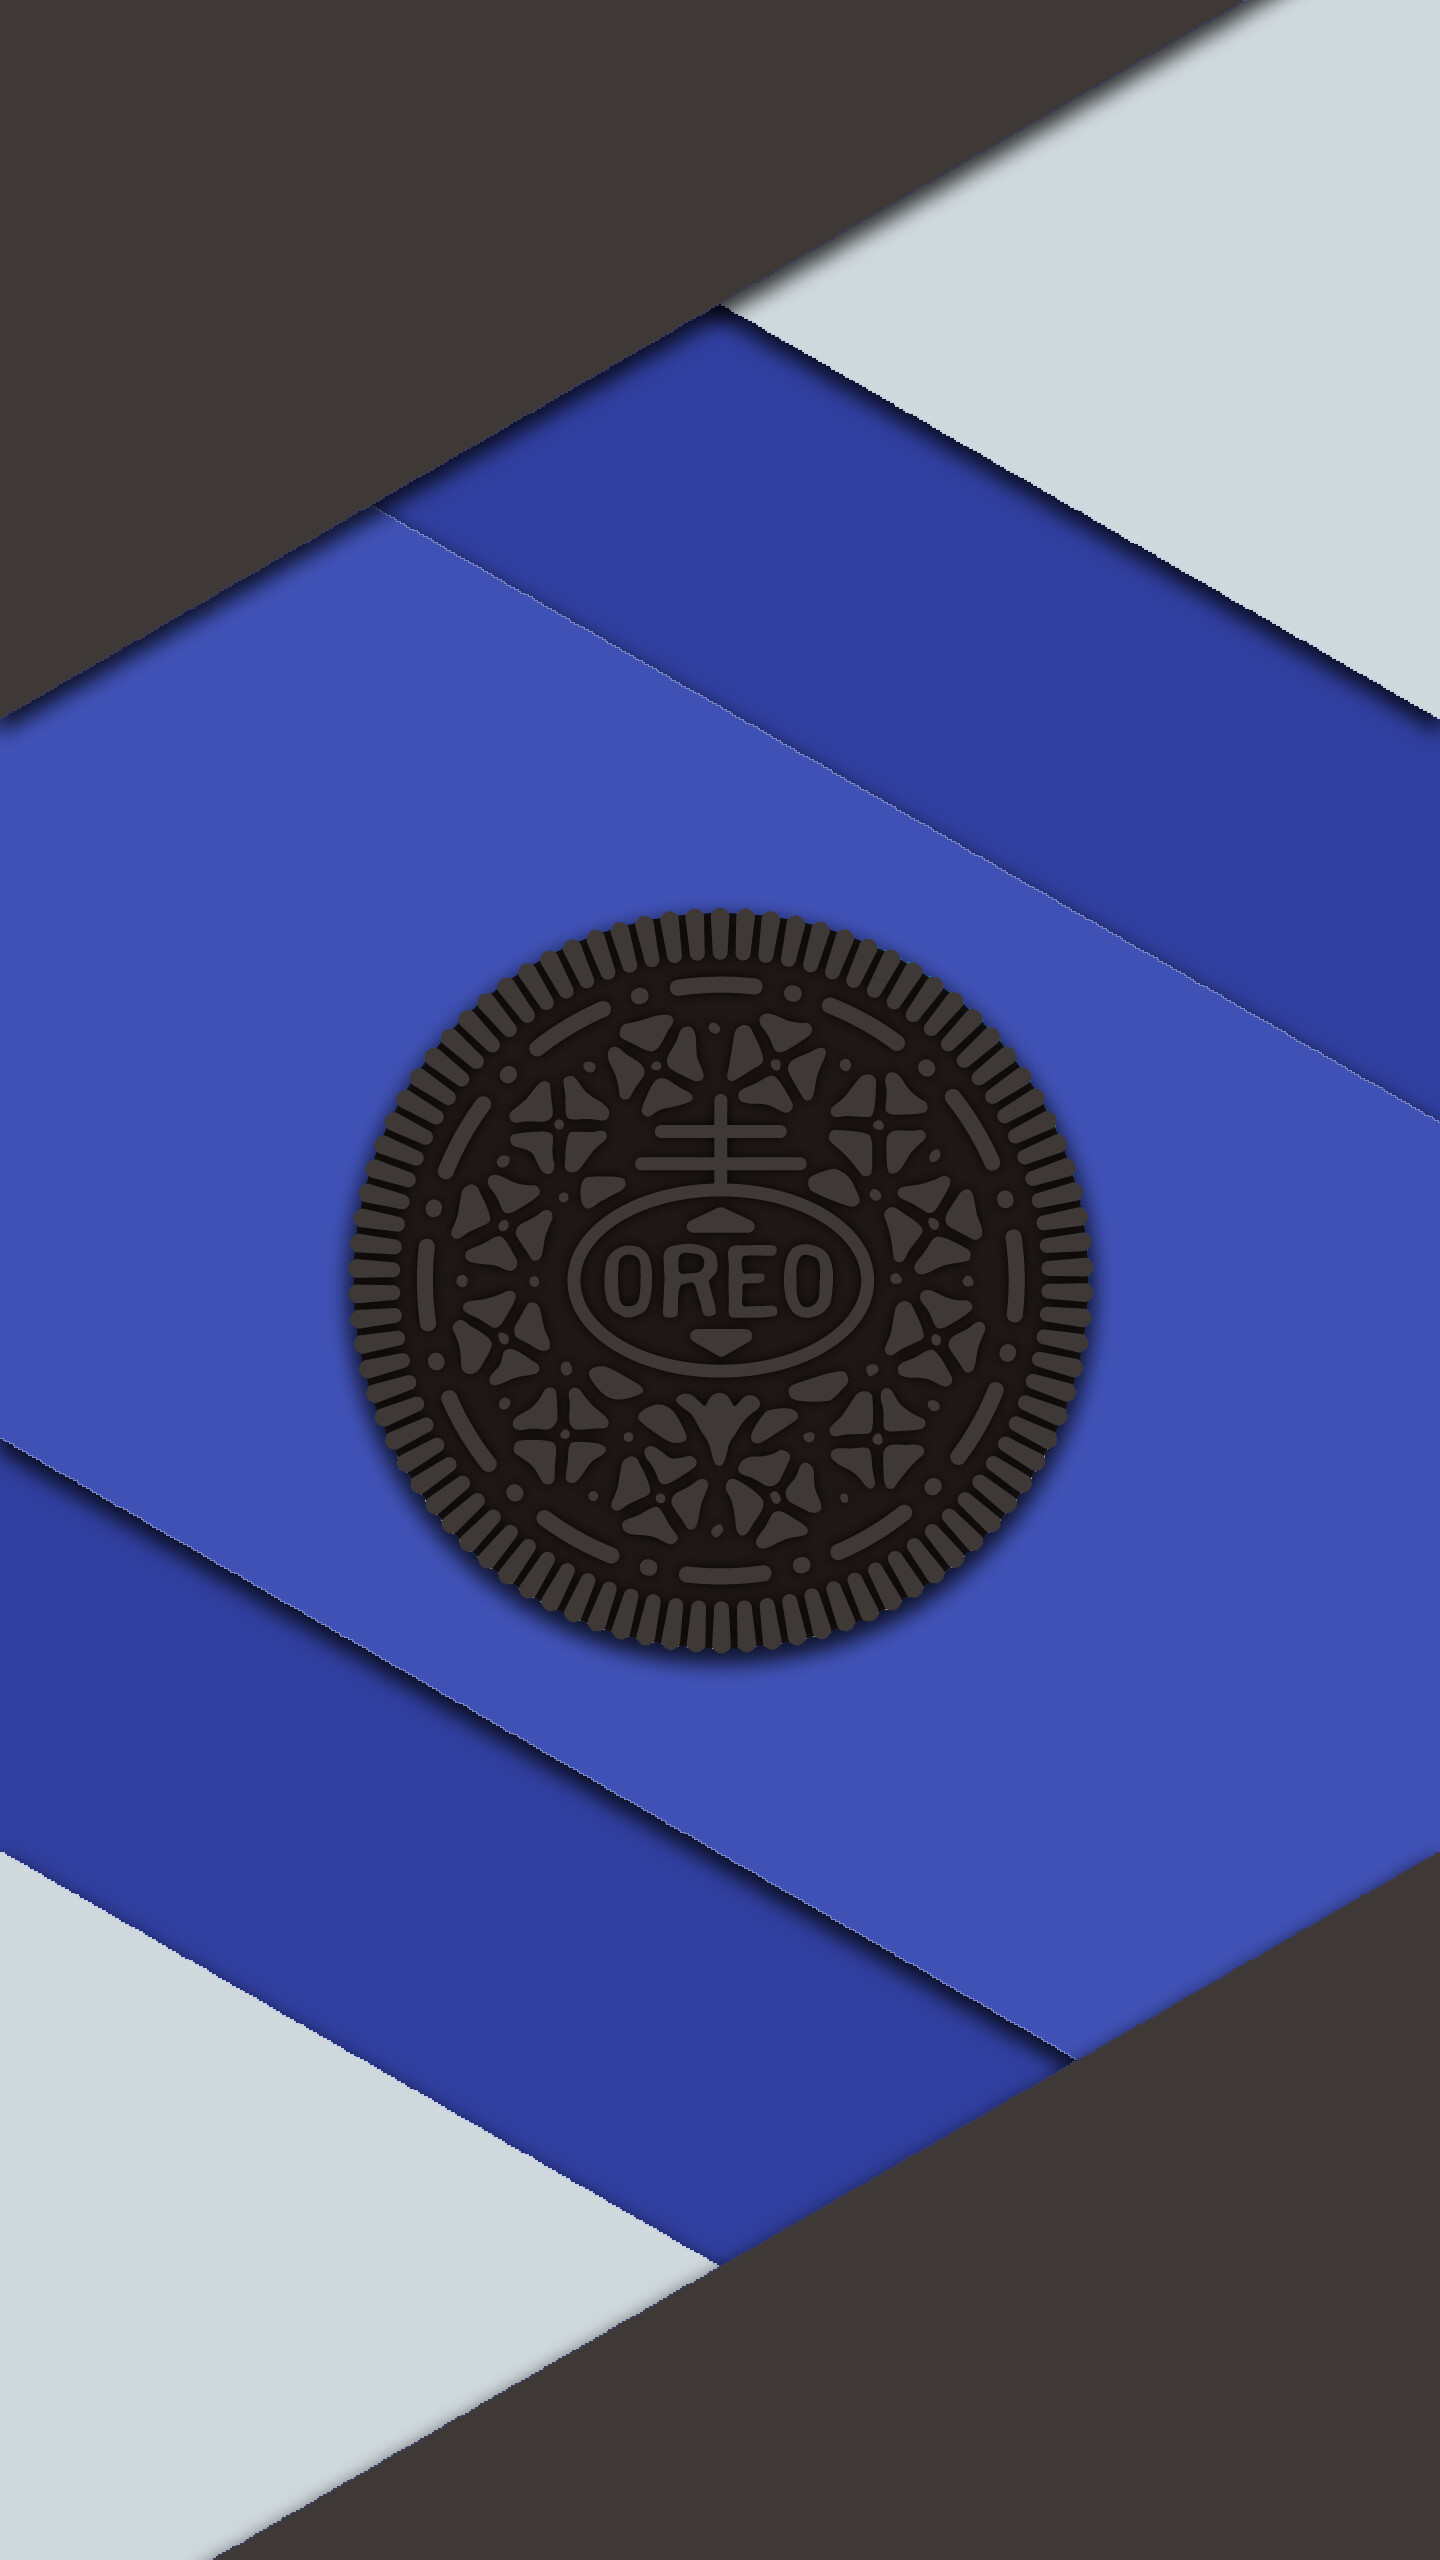 android oreo themed wallpapers